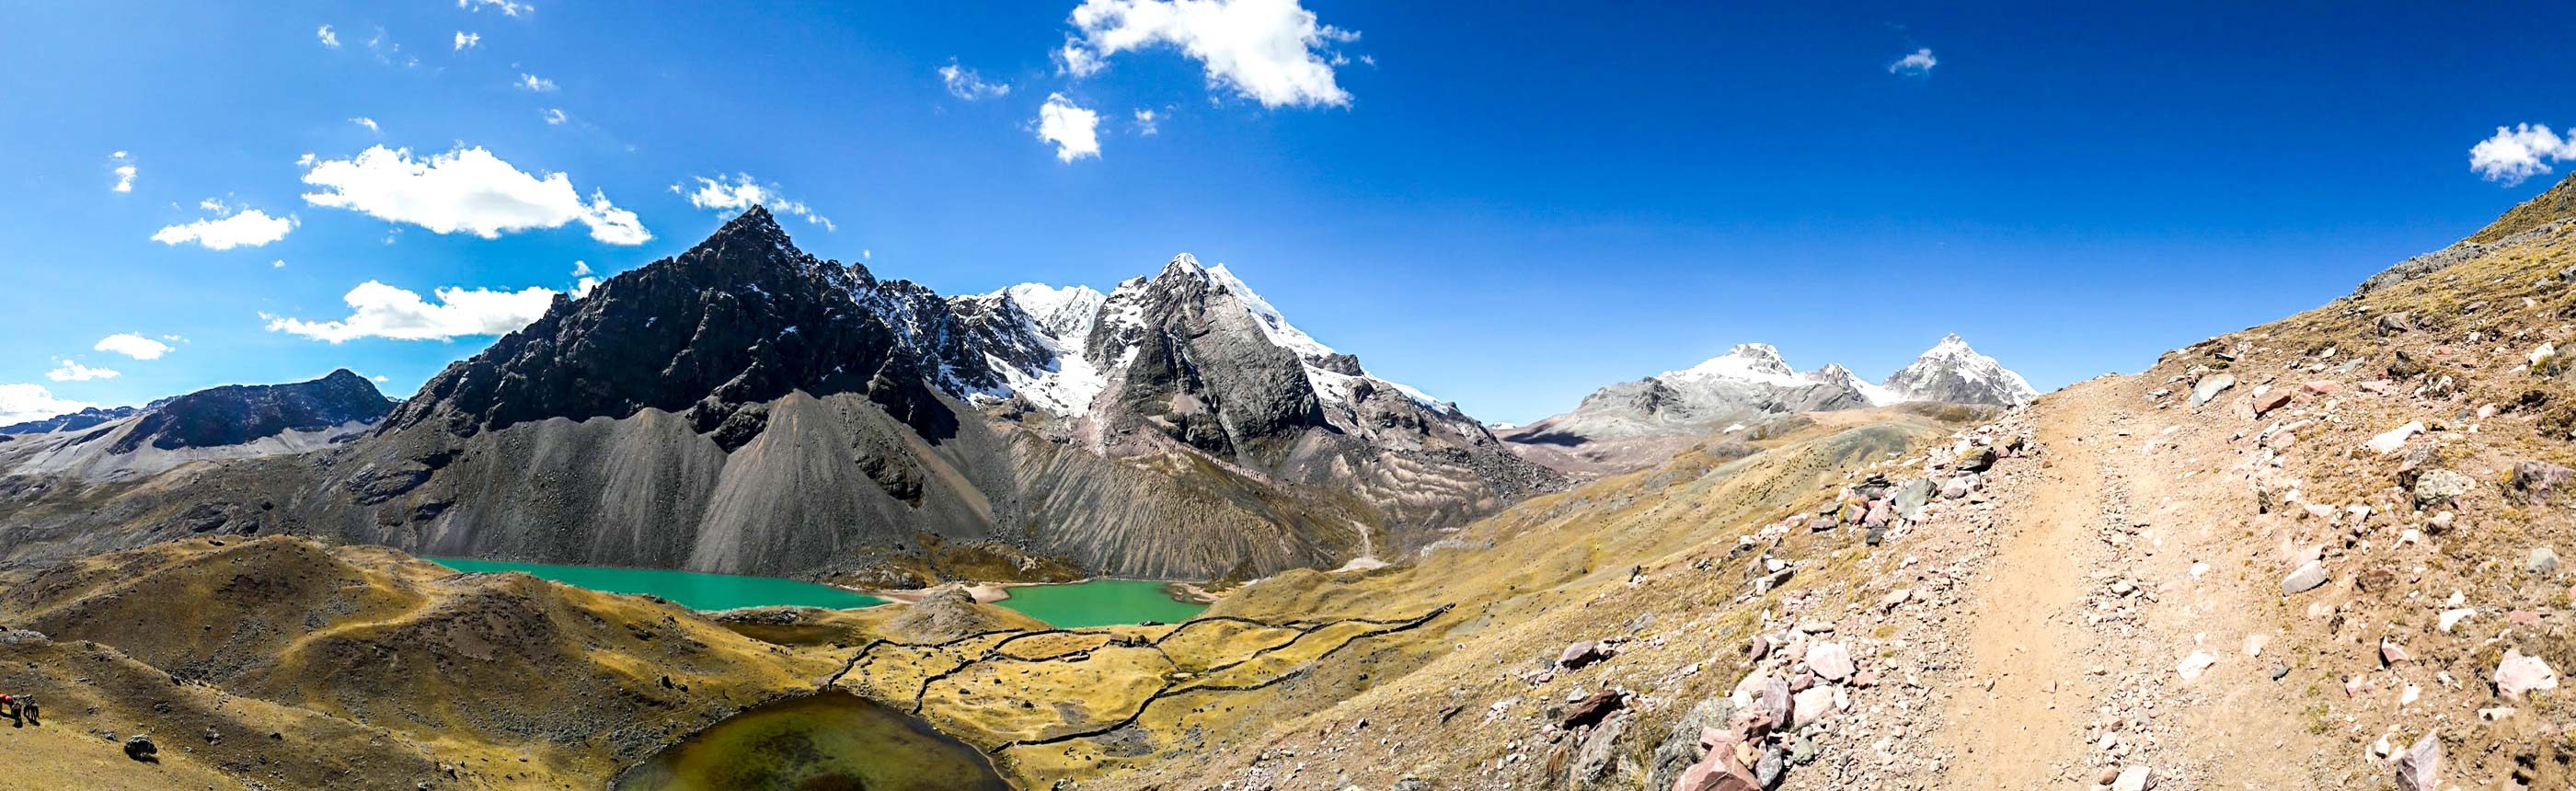 Ausangate Trek & Sibinacocha Lake 7 Days/ 6 Nights